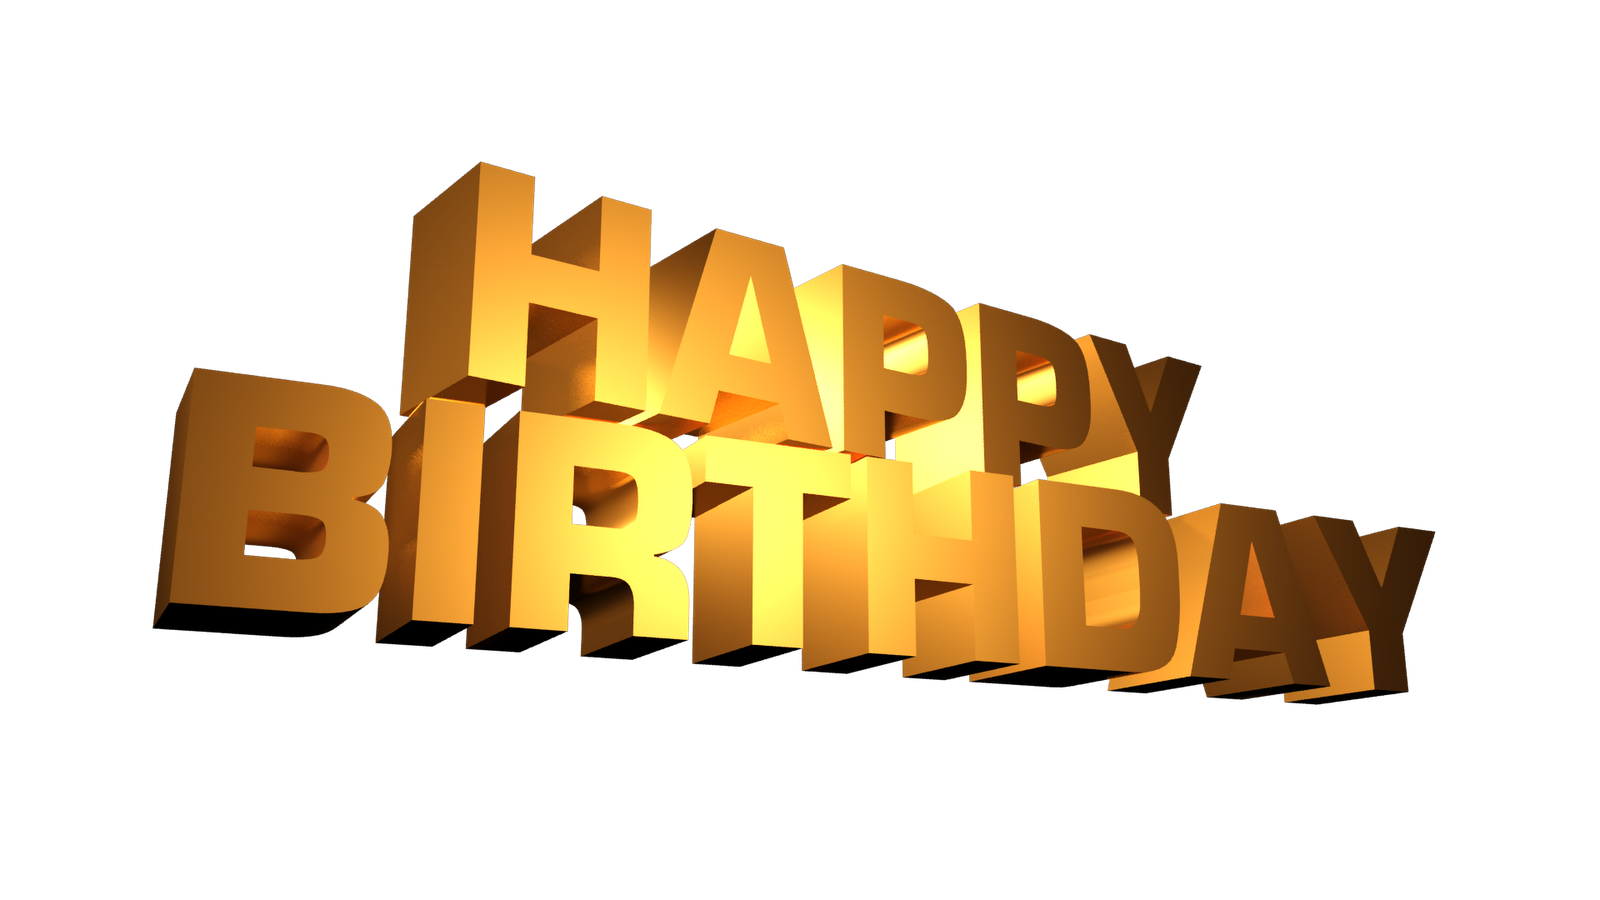 Birthday PNG HD Pictures Transparent Birthday HD Pictures.